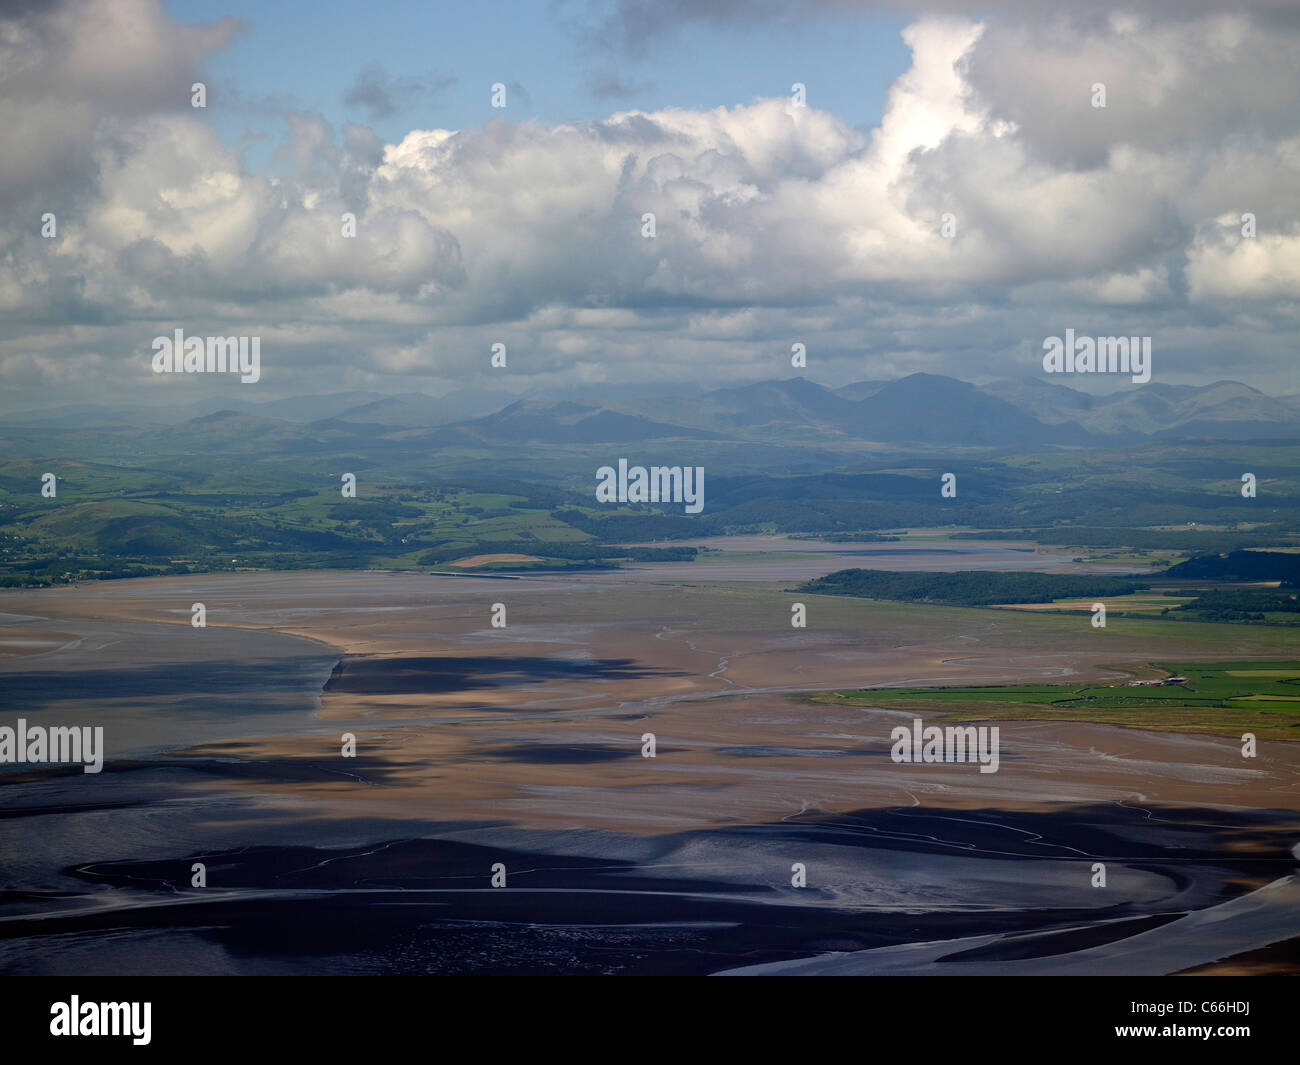 Morcambe Bay, North West England, from the air looking north to the distant Lake District Mountains - Stock Image